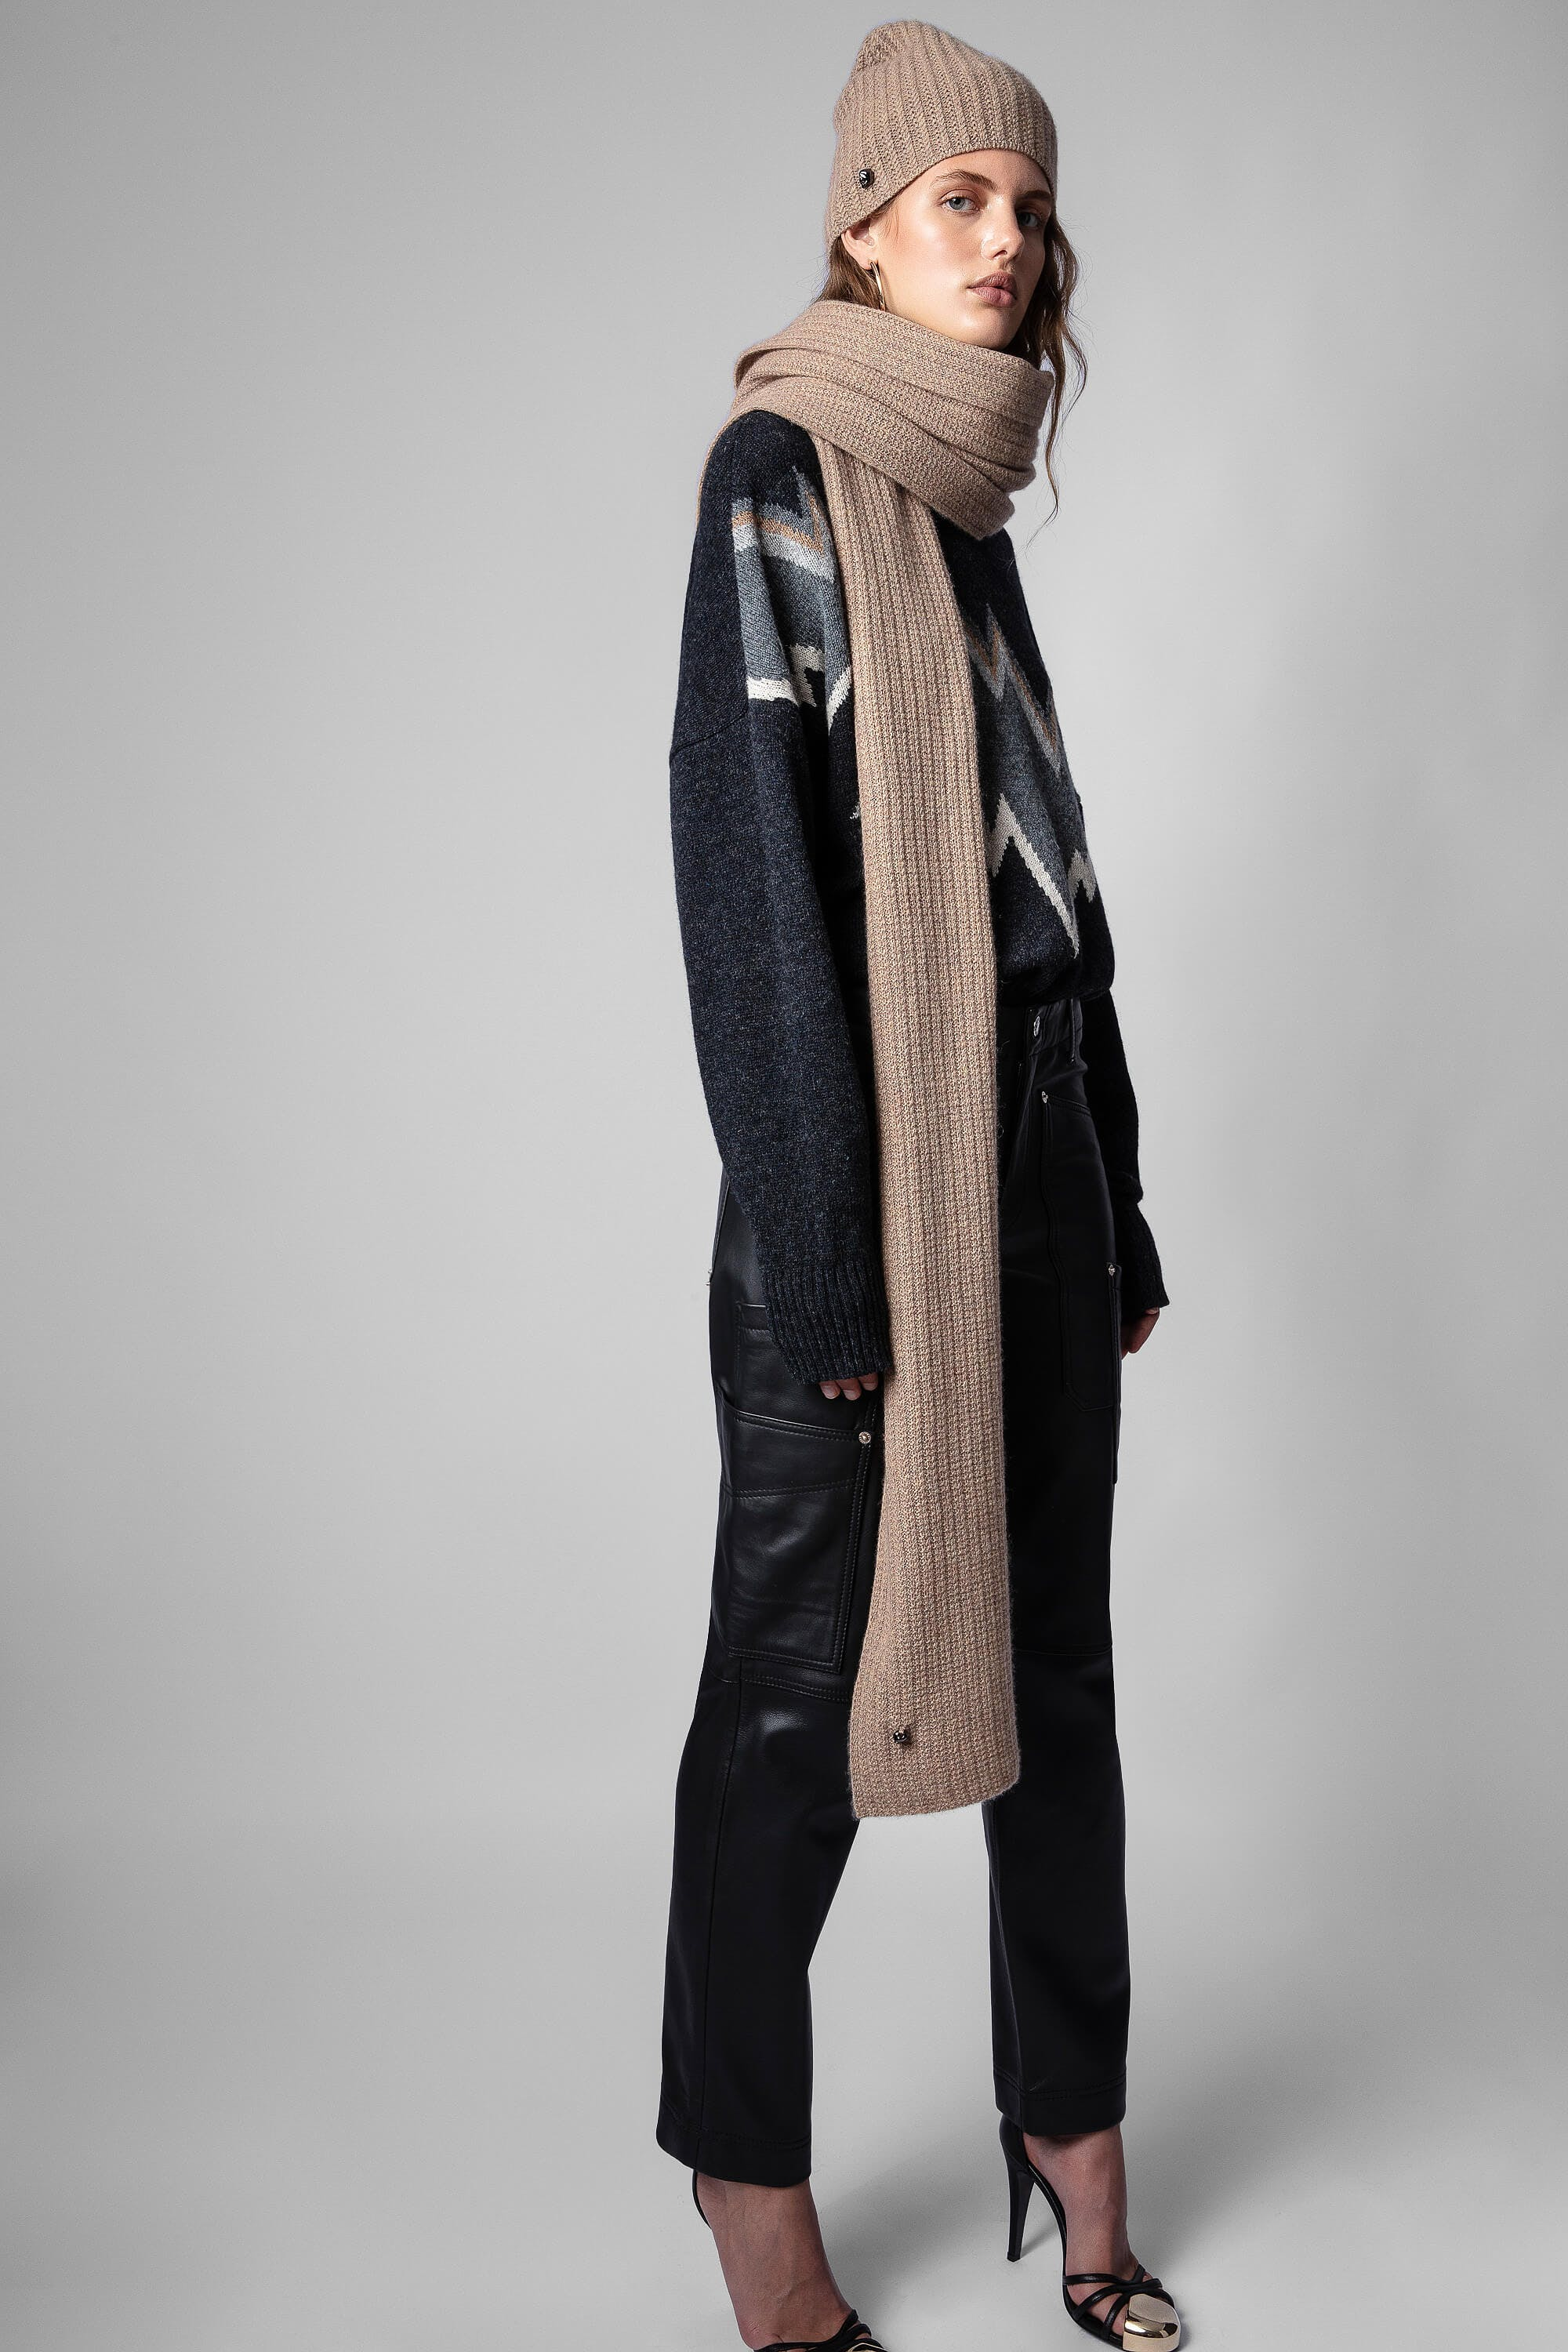 Accessories, View All: Scarf, Hats, Jewelry, Belts|Zadig